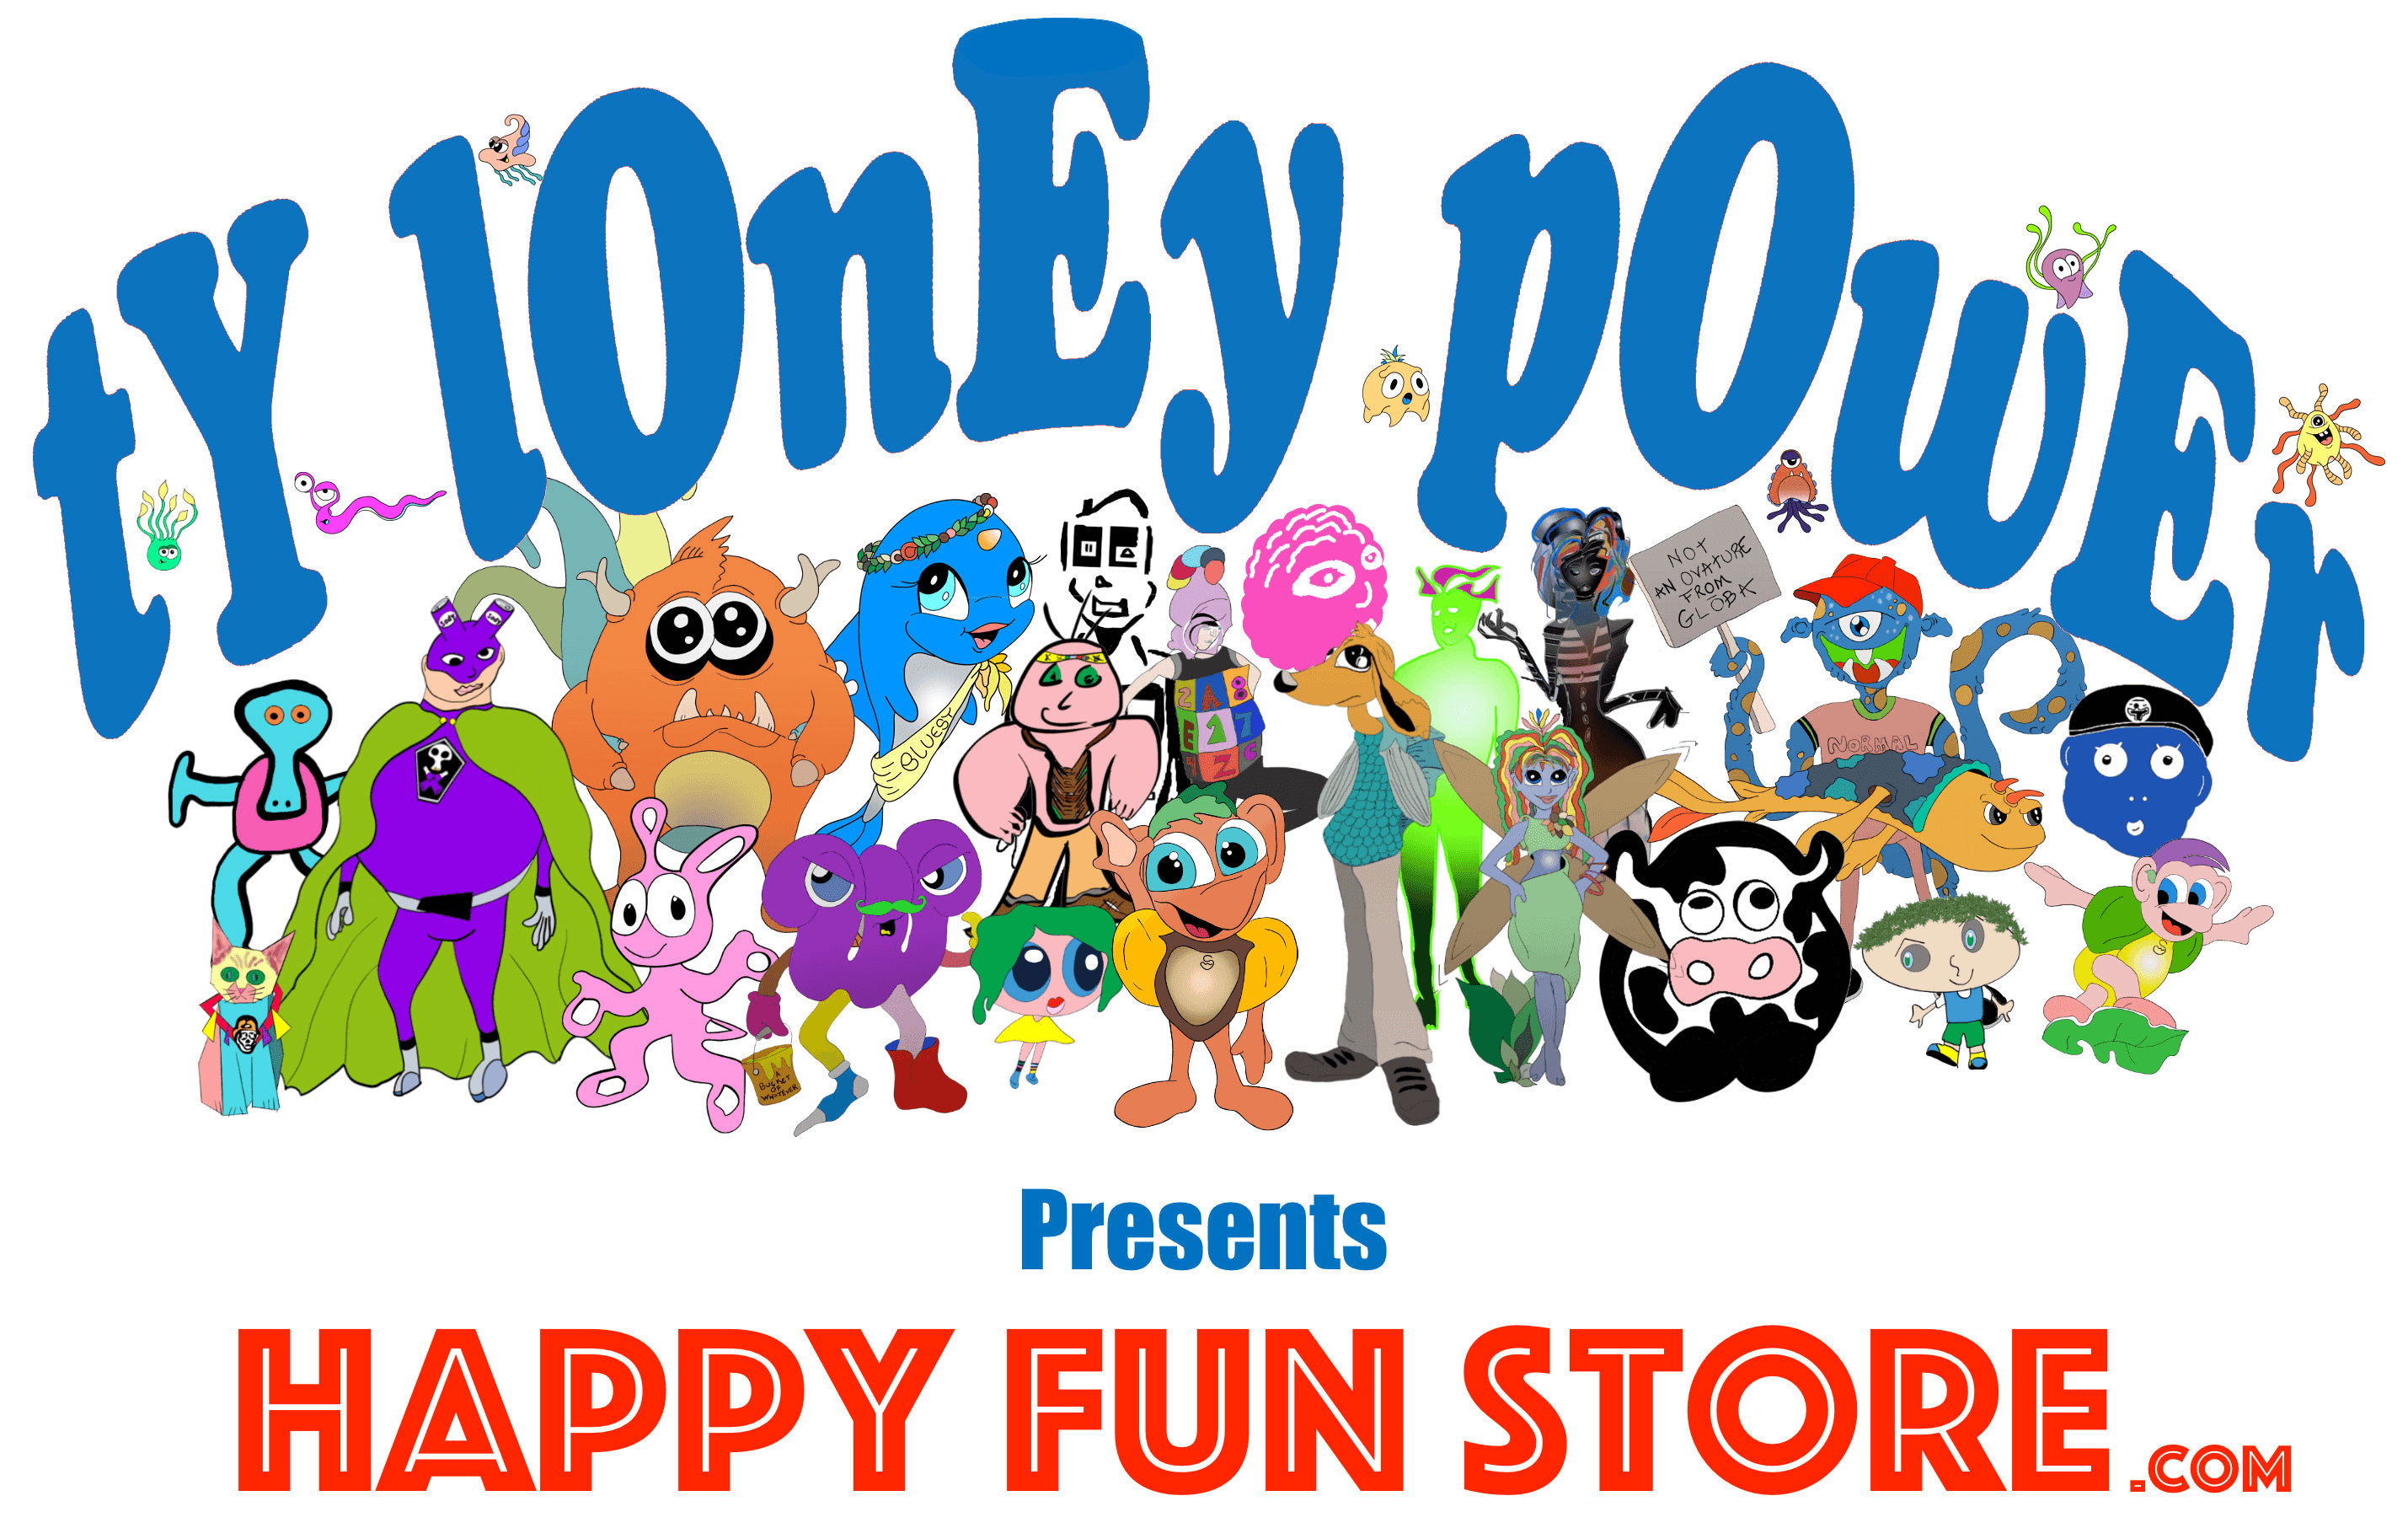 Happy Fun Store